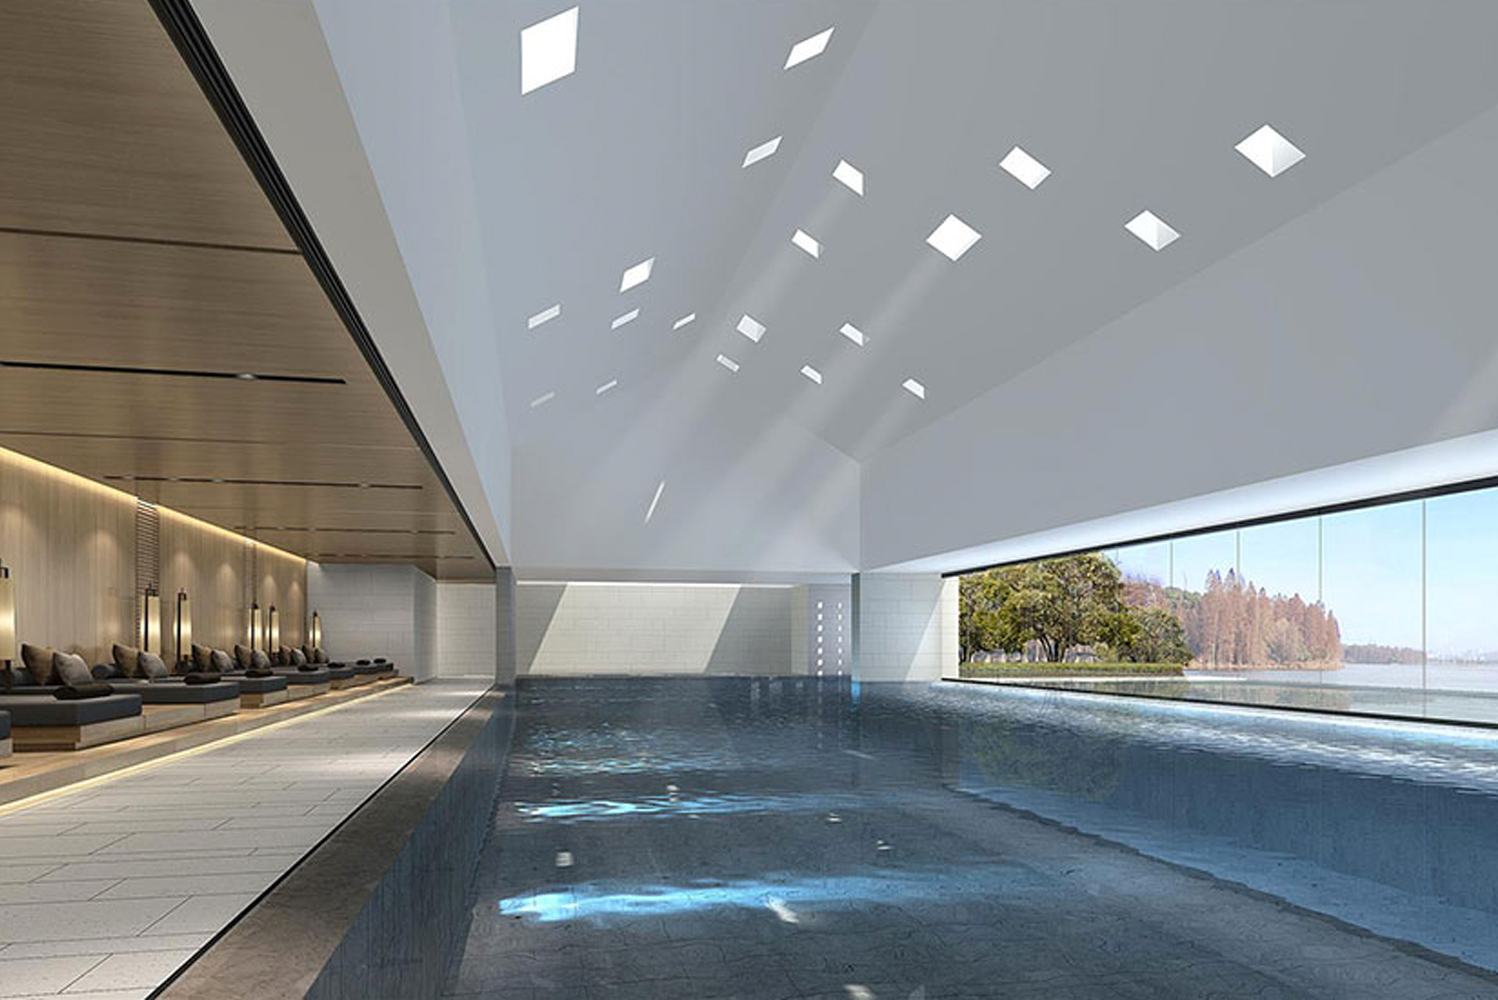 The indoor pool will be inspired by the Arabian Alhambra's bathroom with patterns etched onto its pitched roof.